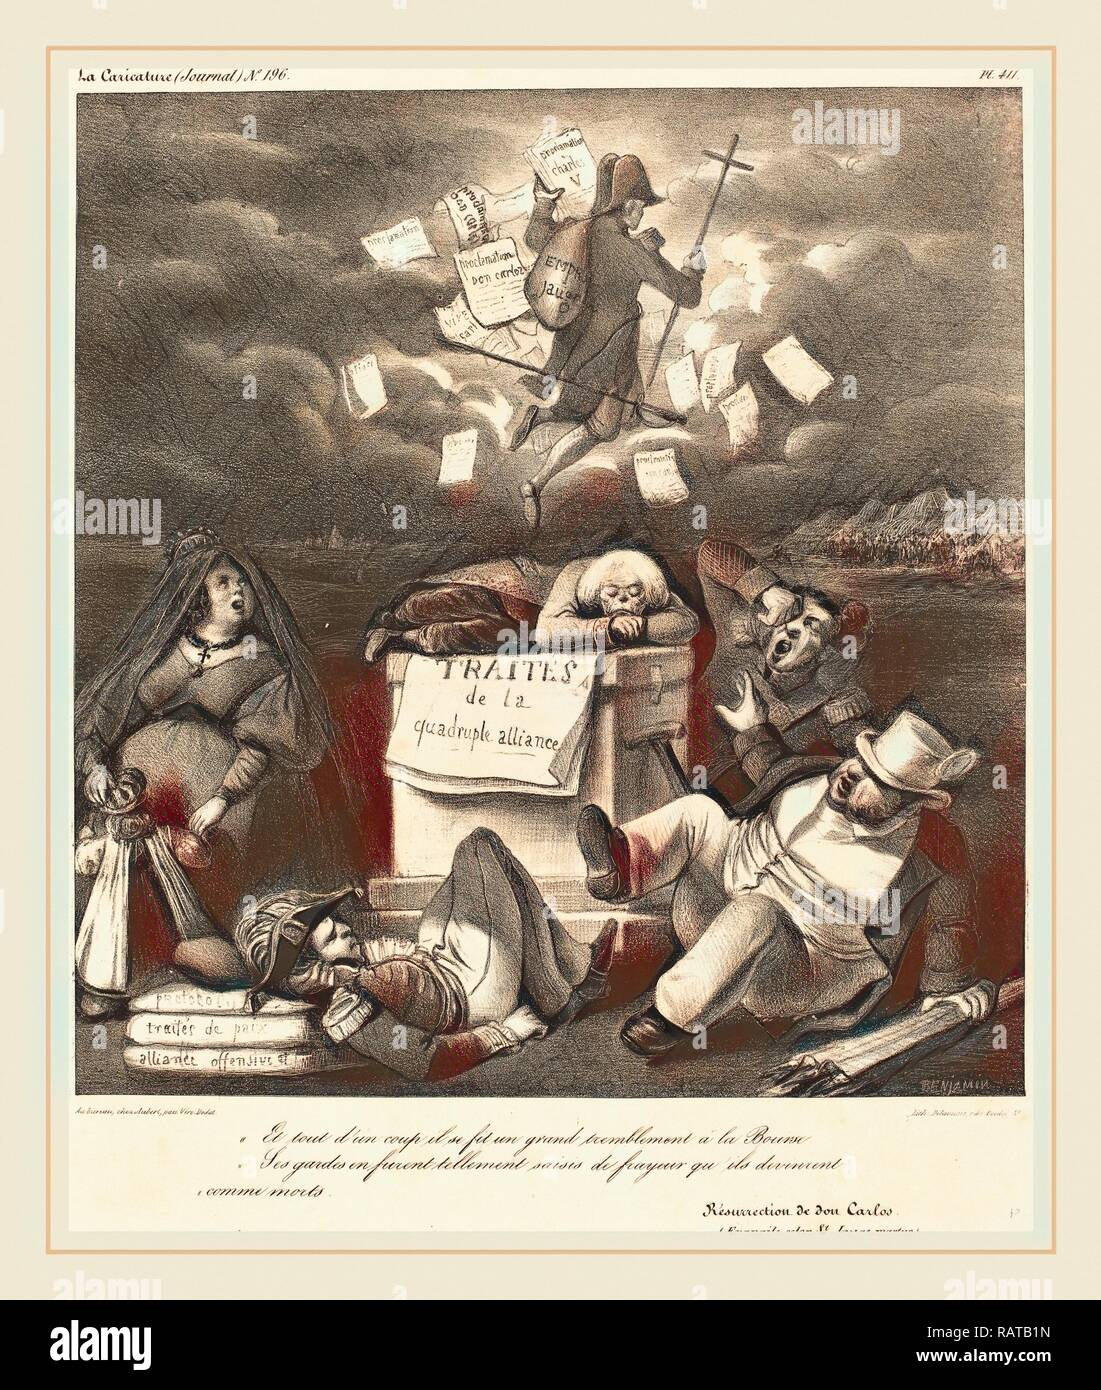 Benjamin Roubaud, Résurrection de don Carlo, 1830s, lithograph. Reimagined by Gibon. Classic art with a modern twist reimagined - Stock Image